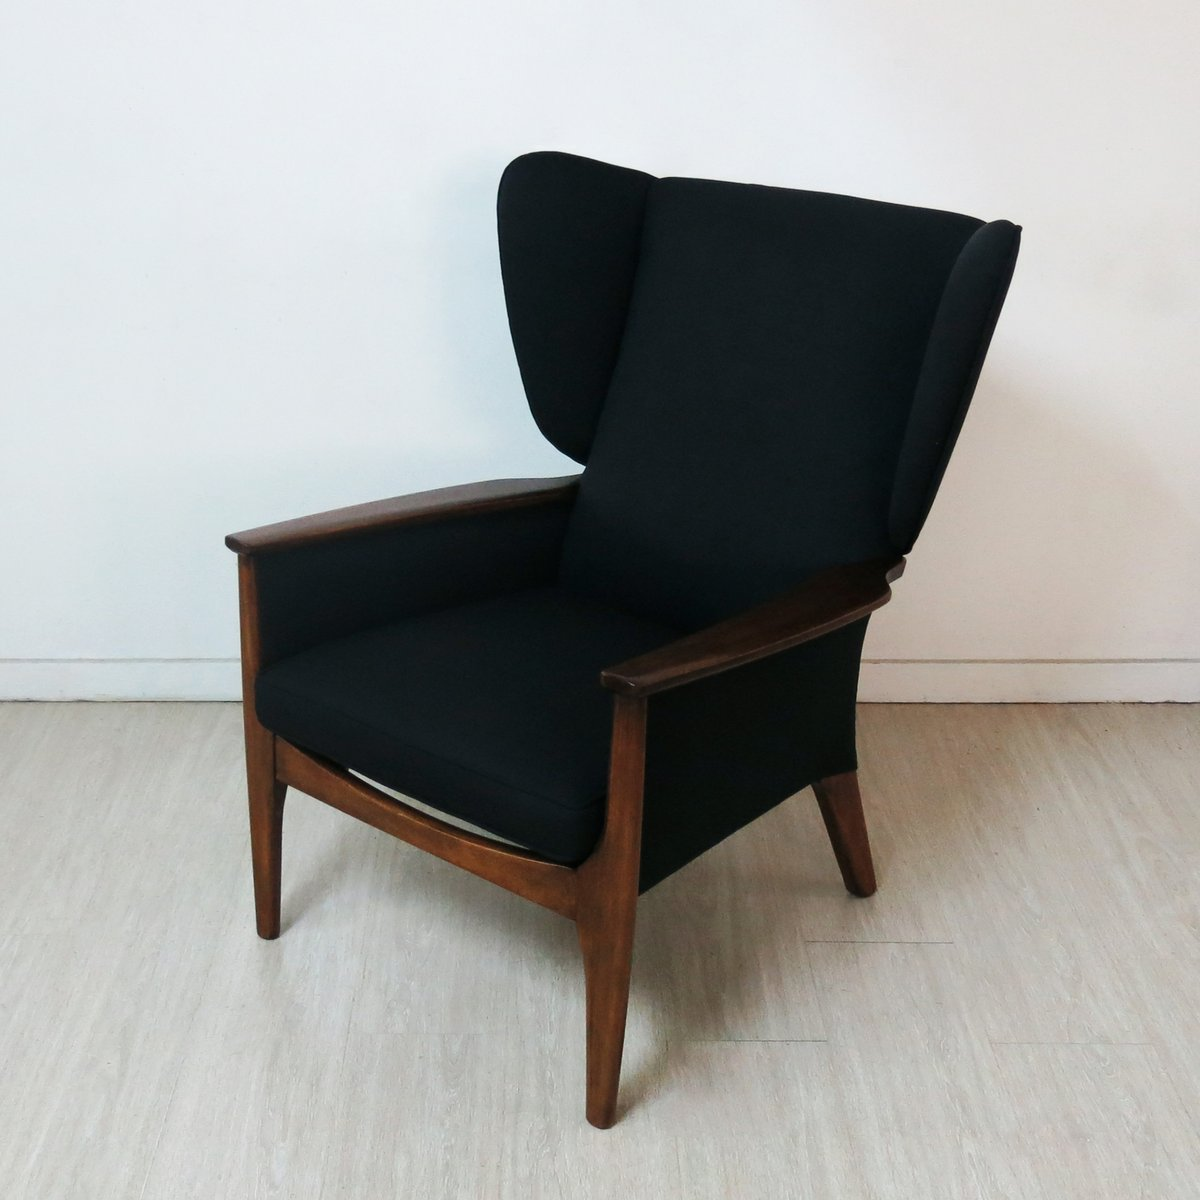 knolls chair with knoll chairs design s sitting modern lounge milk pretty